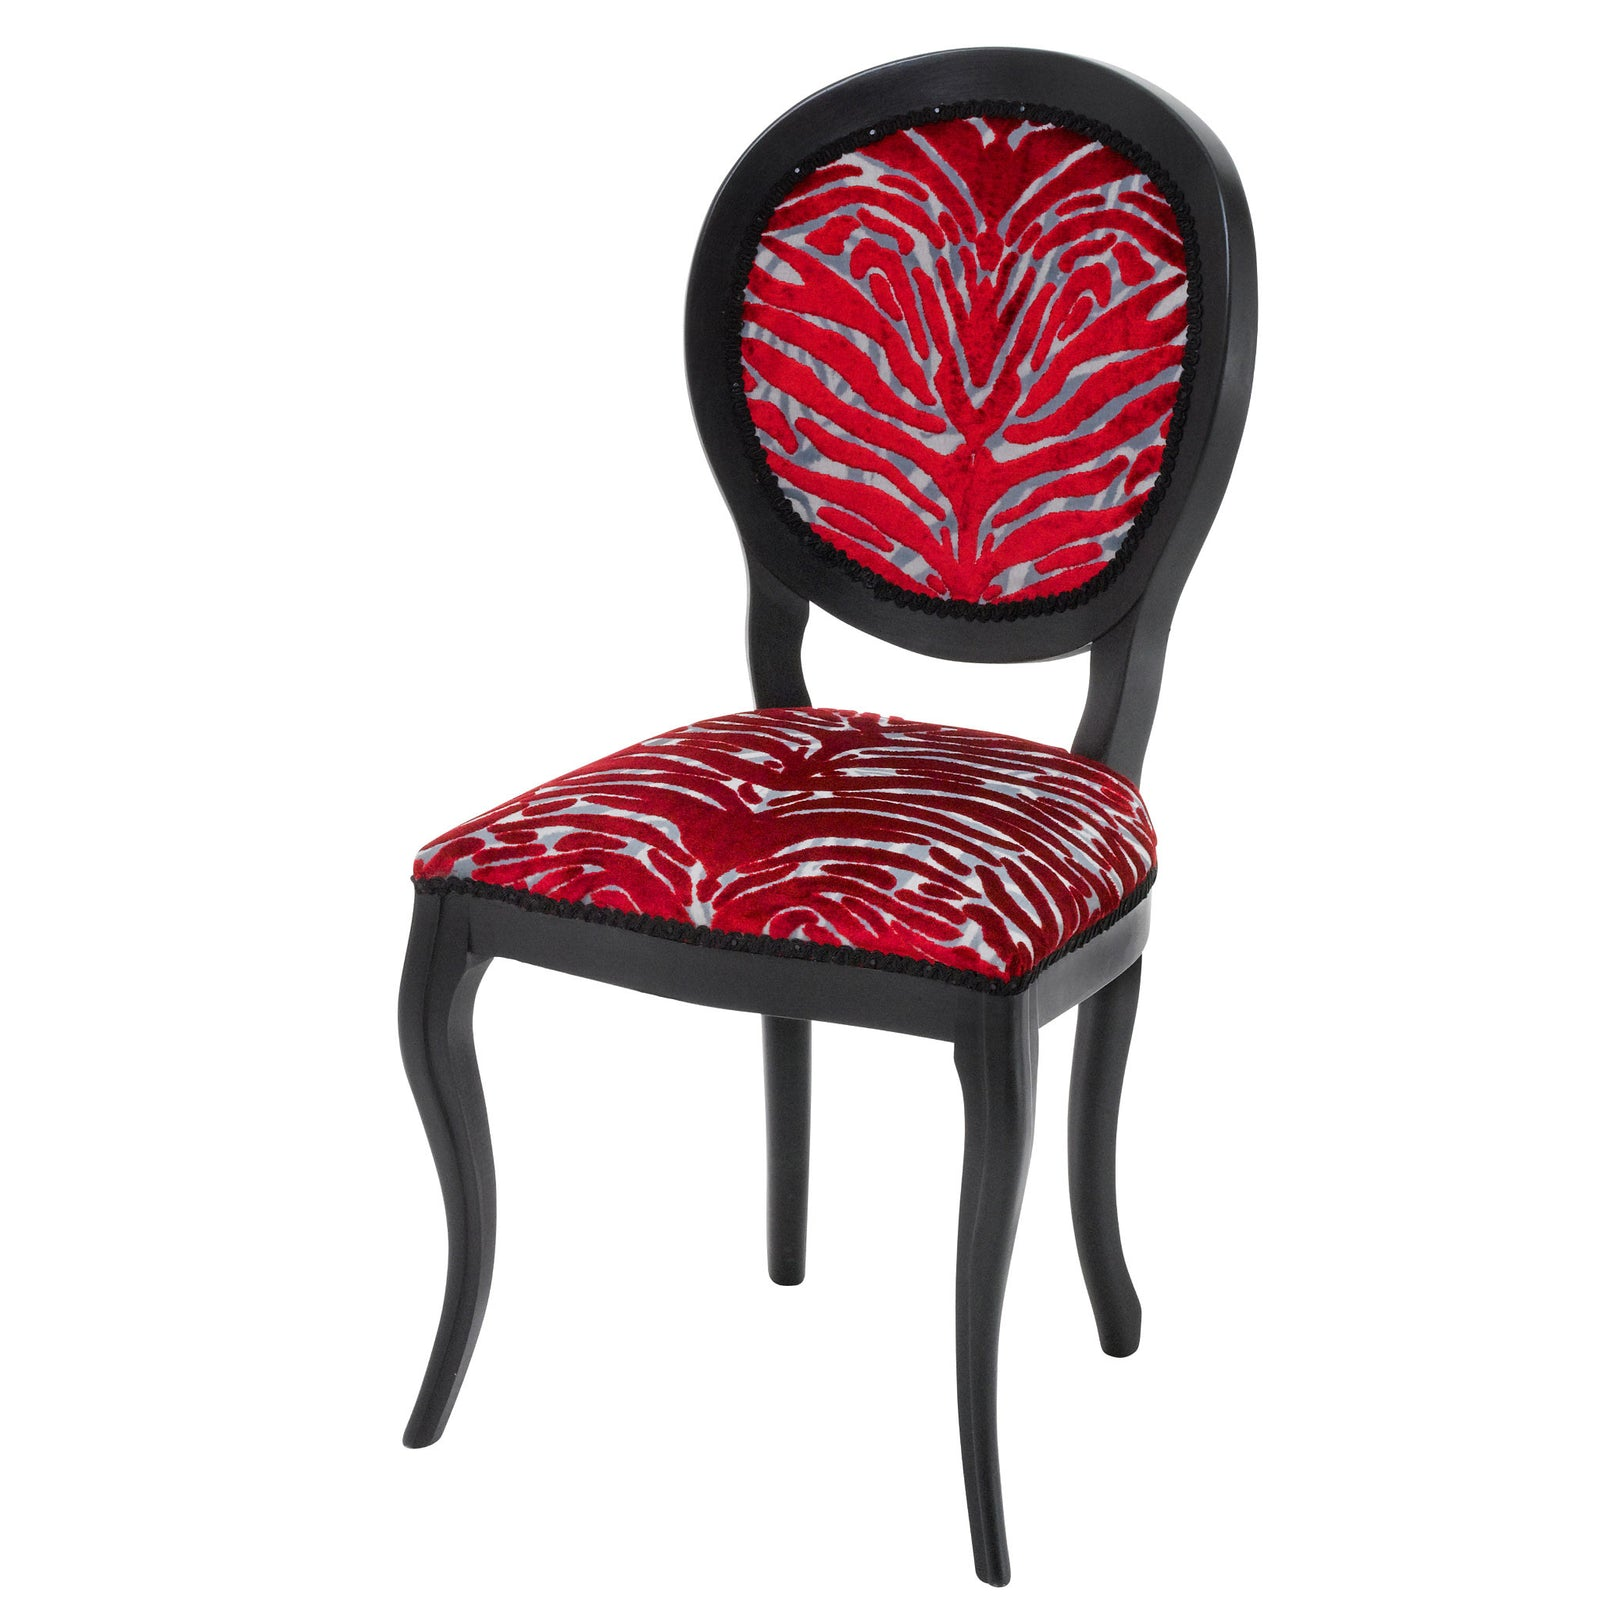 Designer Chair Upholstered in Soft Pantigre in Papaye by Christian Lacroix